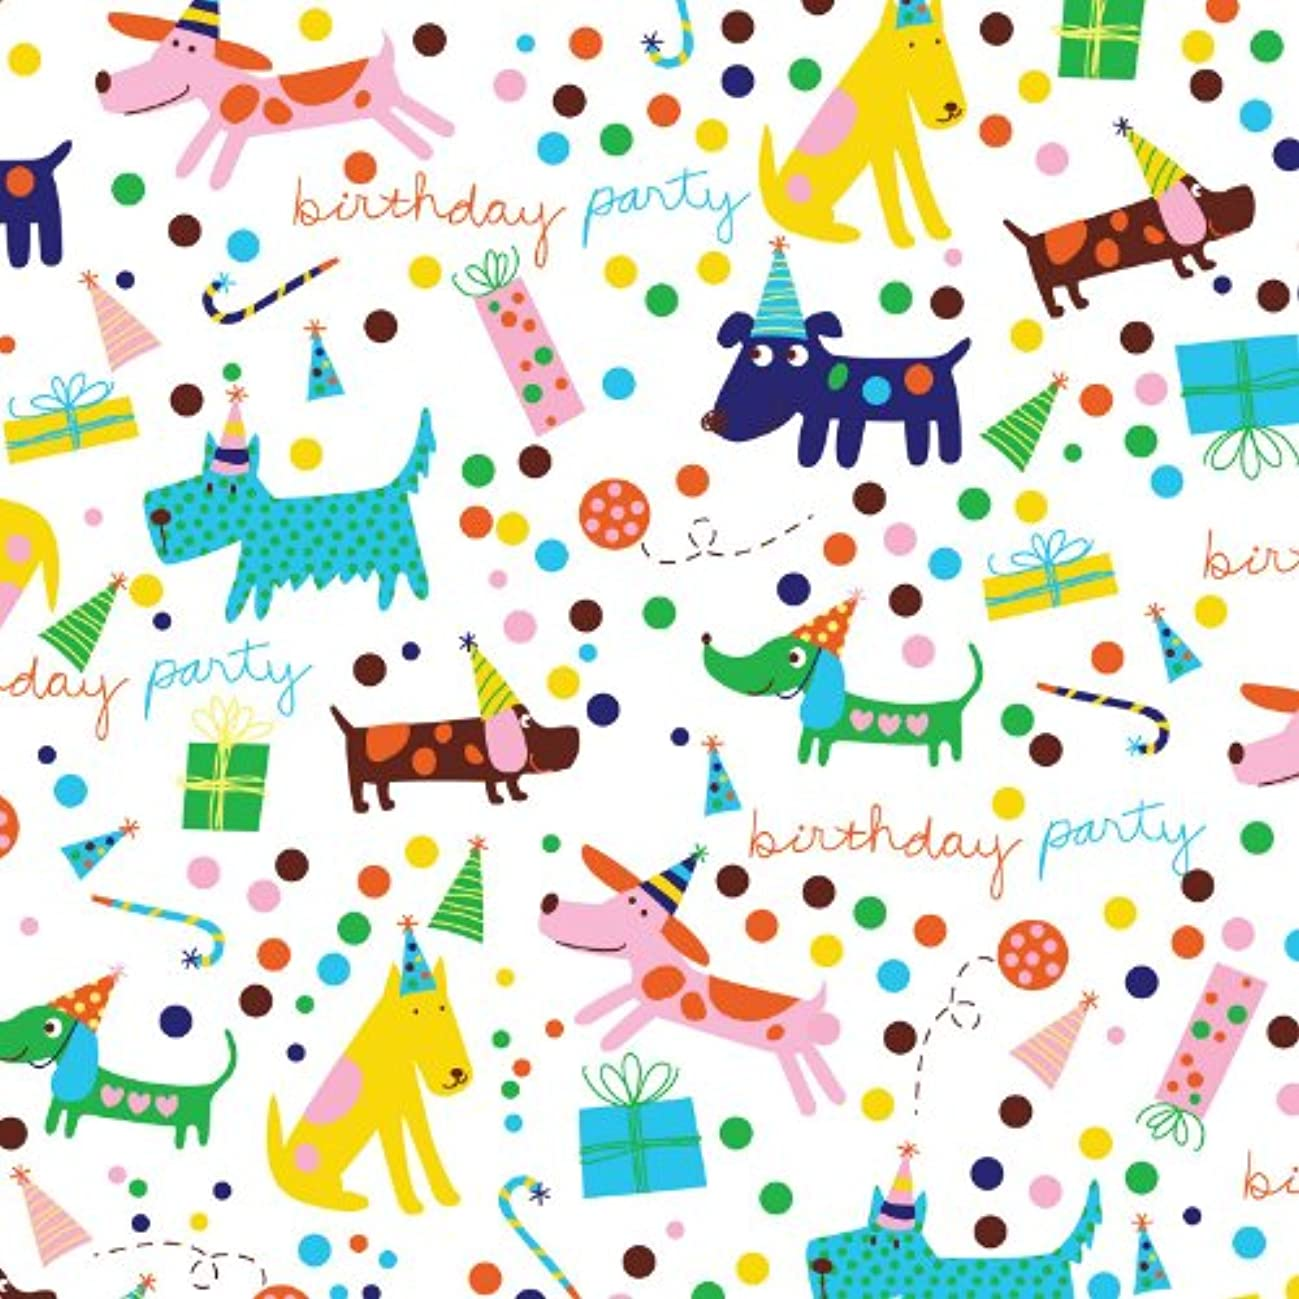 Jillson Roberts 6-Roll Count Premium Gift Wrap Available in 19 Different Designs, Birthday Barkday